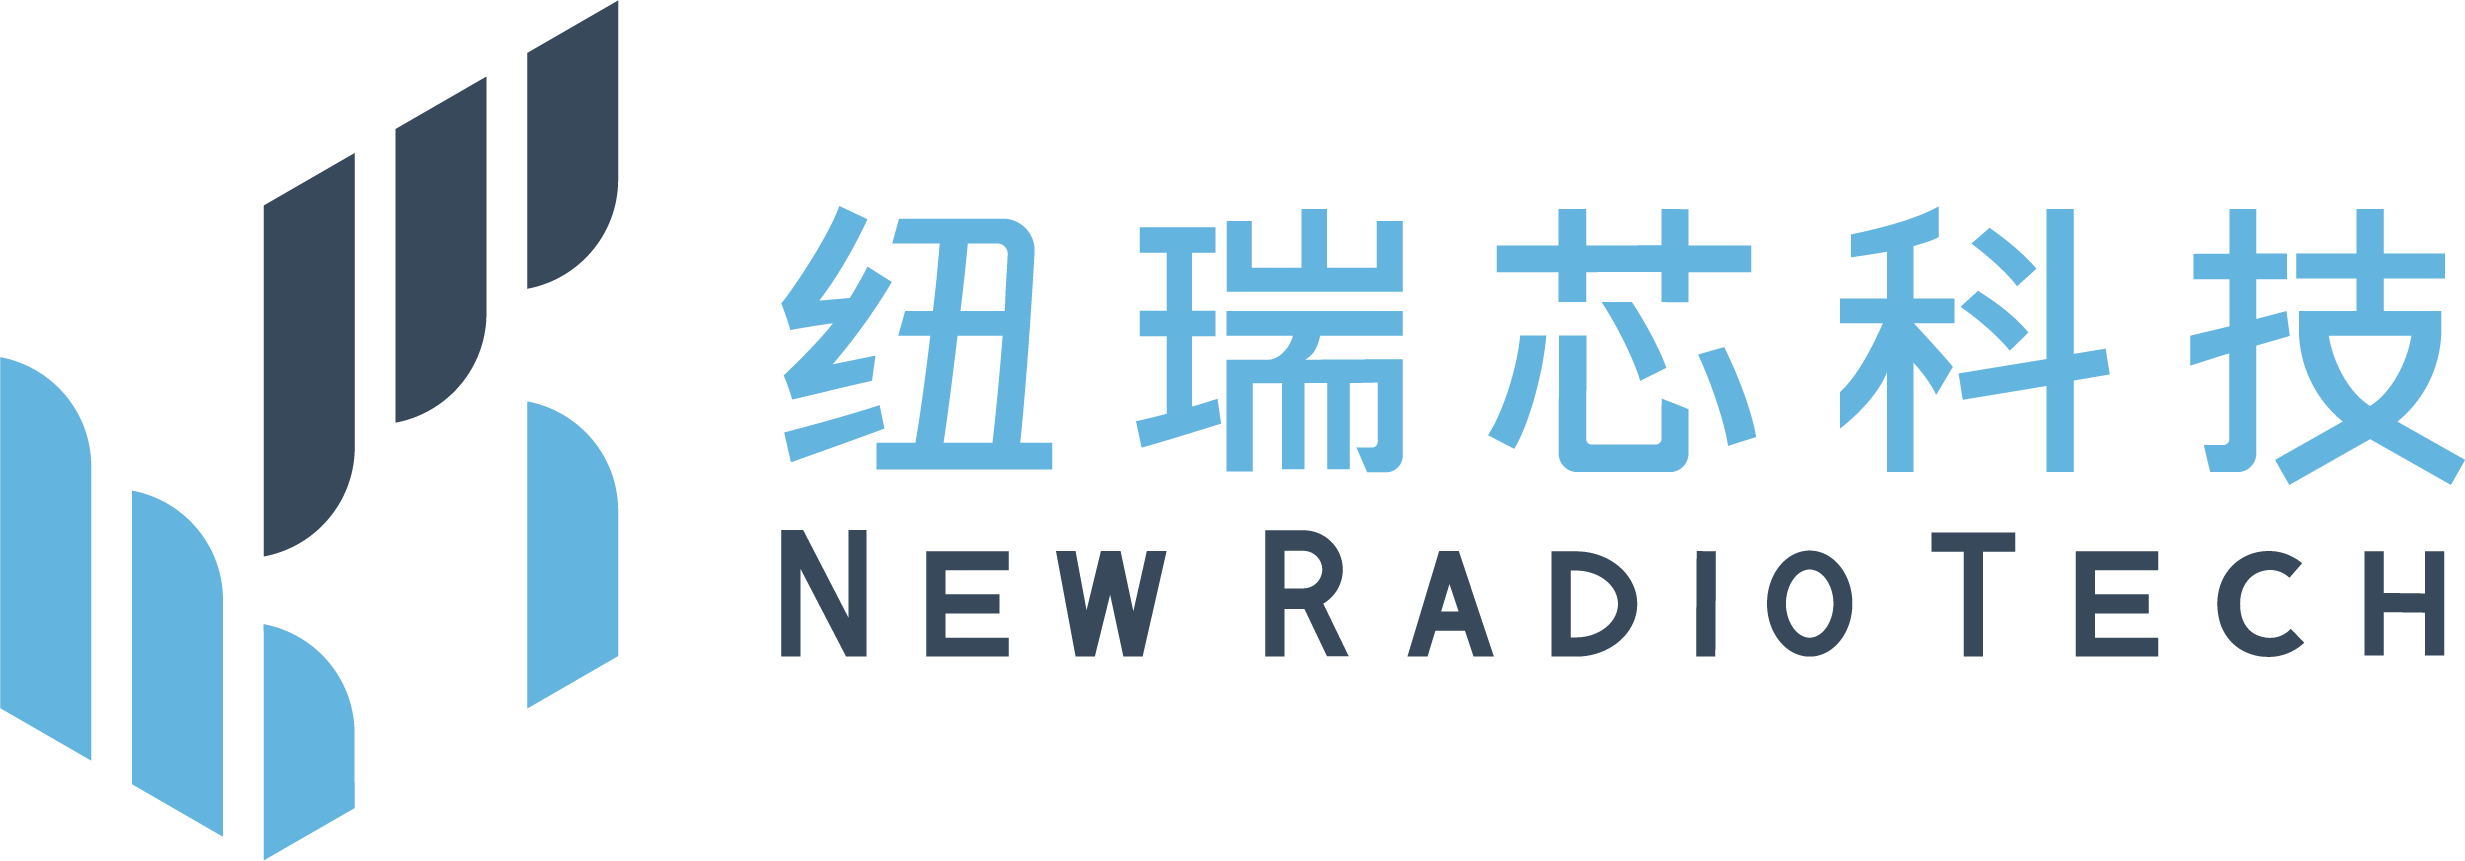 Newradio Technology Co., Ltd.